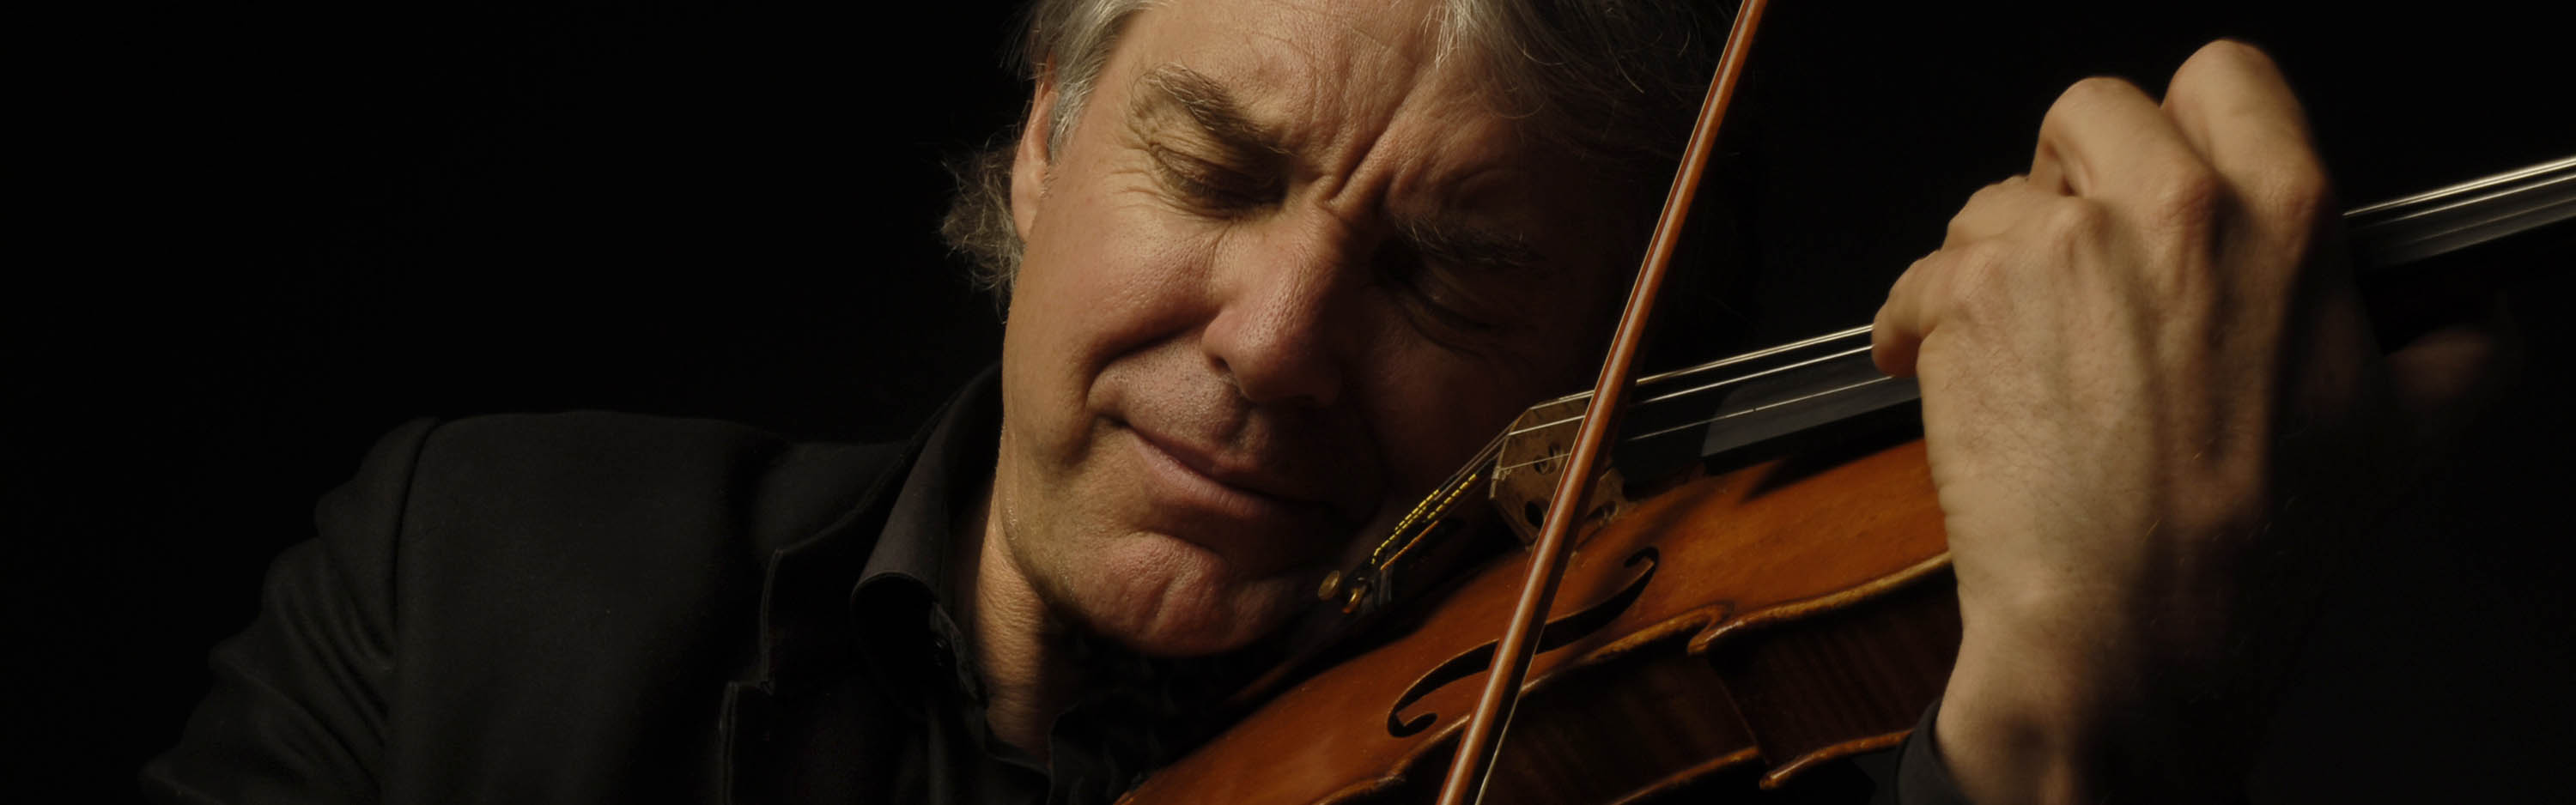 Didier-Lockwood-Ames-Prod.-2009-Copyright-Ph.-Levy-Stab